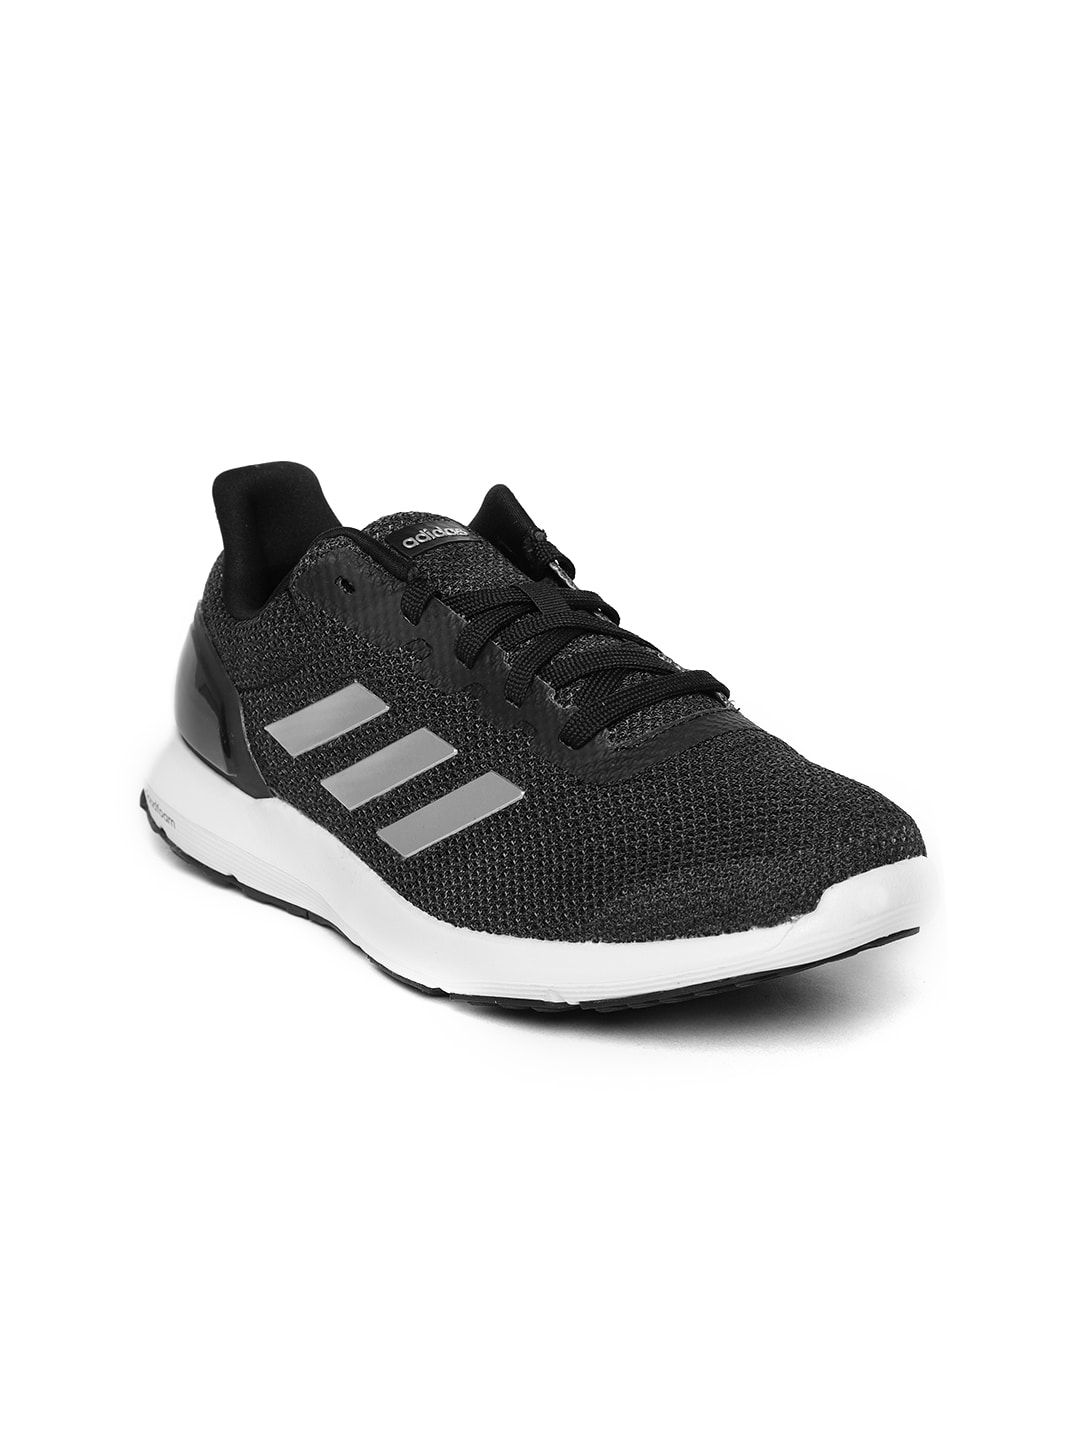 9fb705ff0ff5 Adidas Shoes - Buy Adidas Shoes for Men   Women Online - Myntra